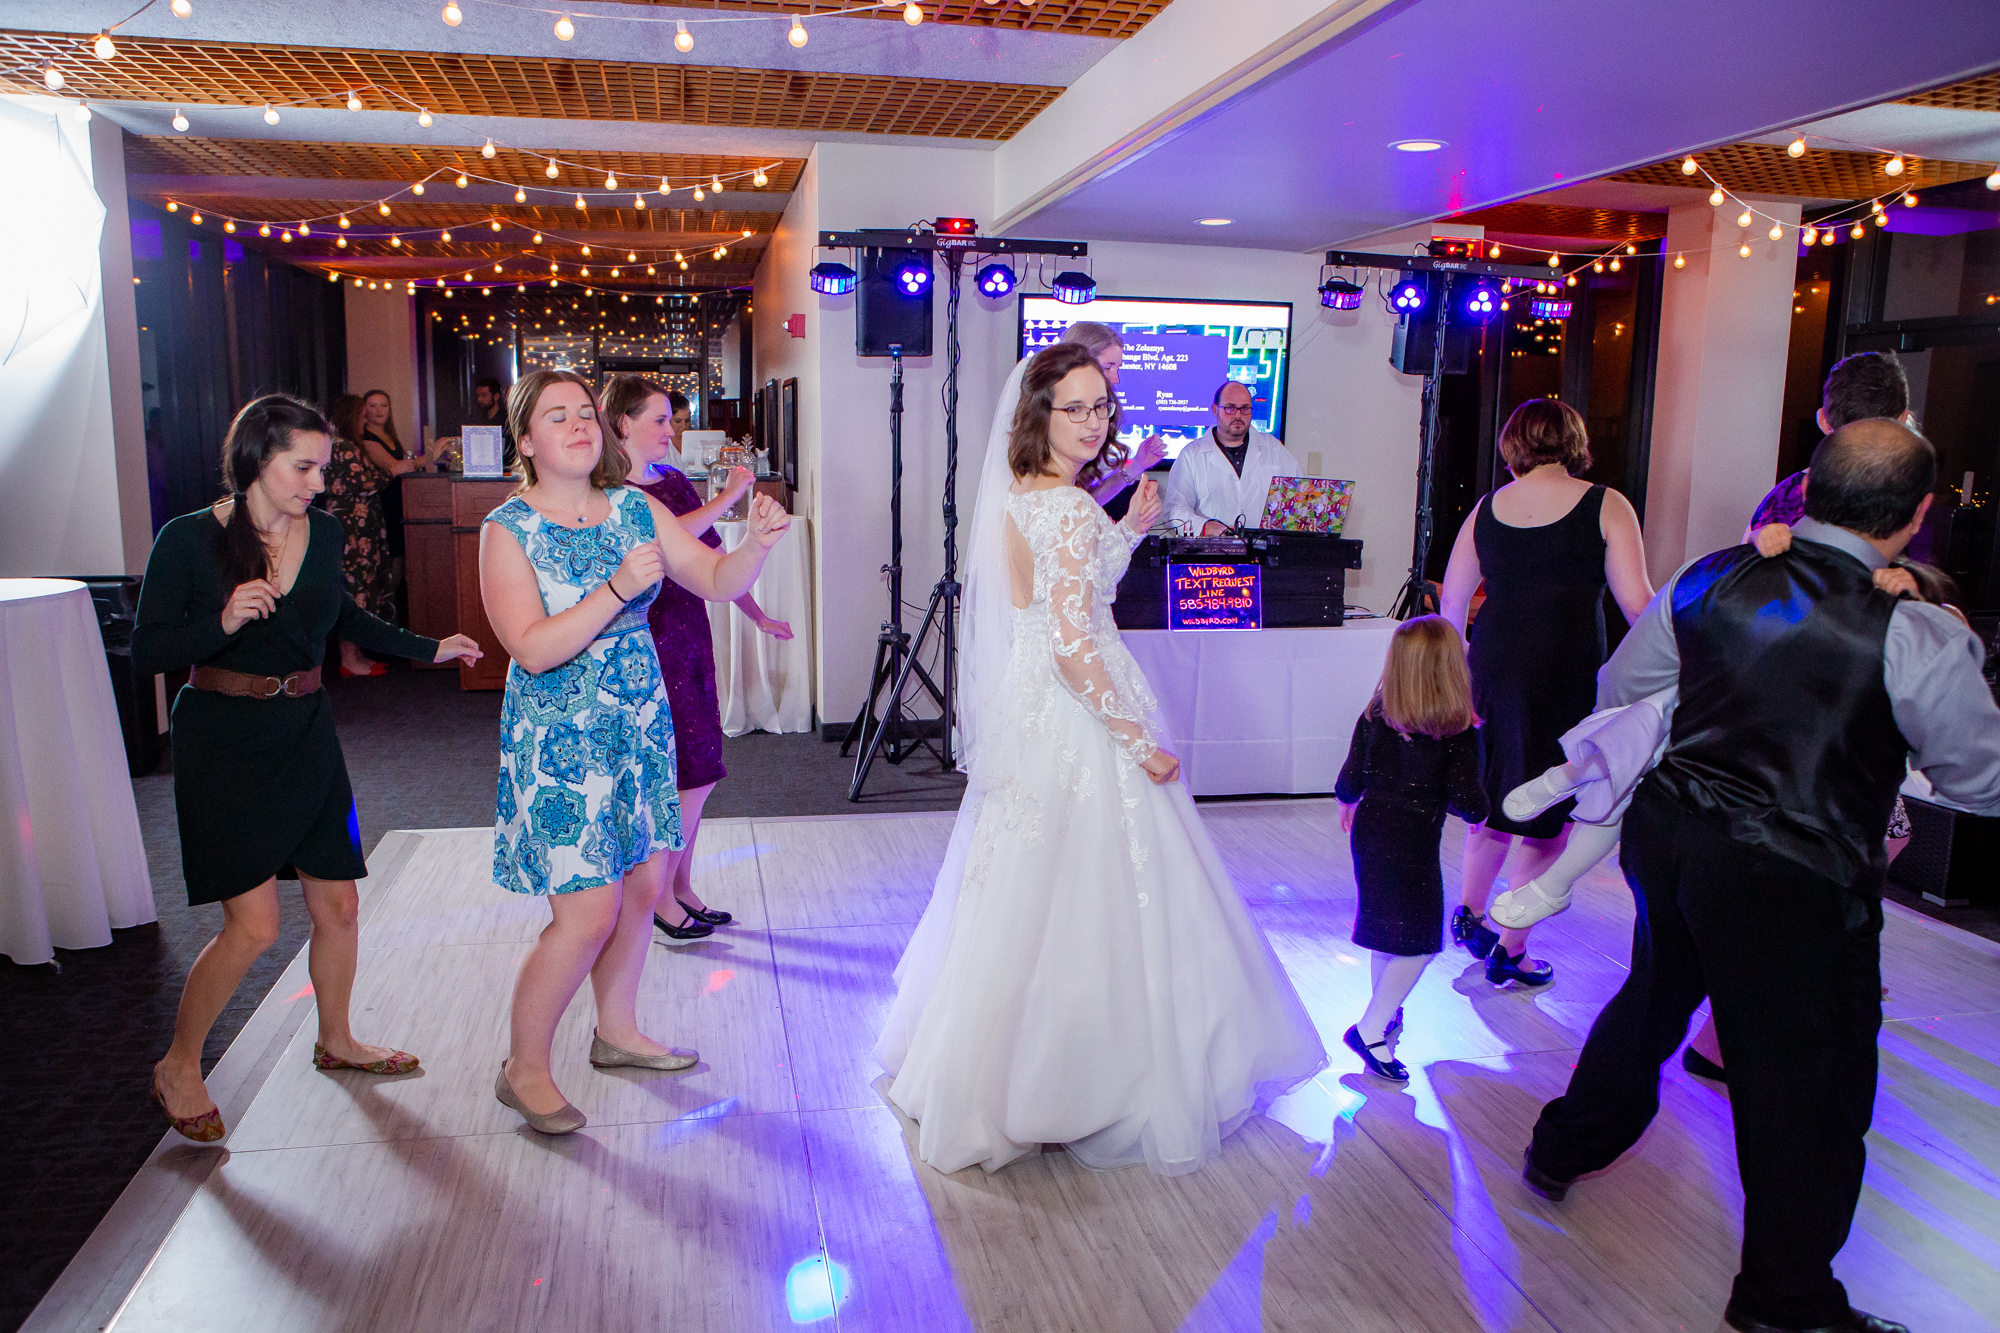 Penthouse-at-One-East-Avenue-Rochester-NY-Wedding-5694.jpg